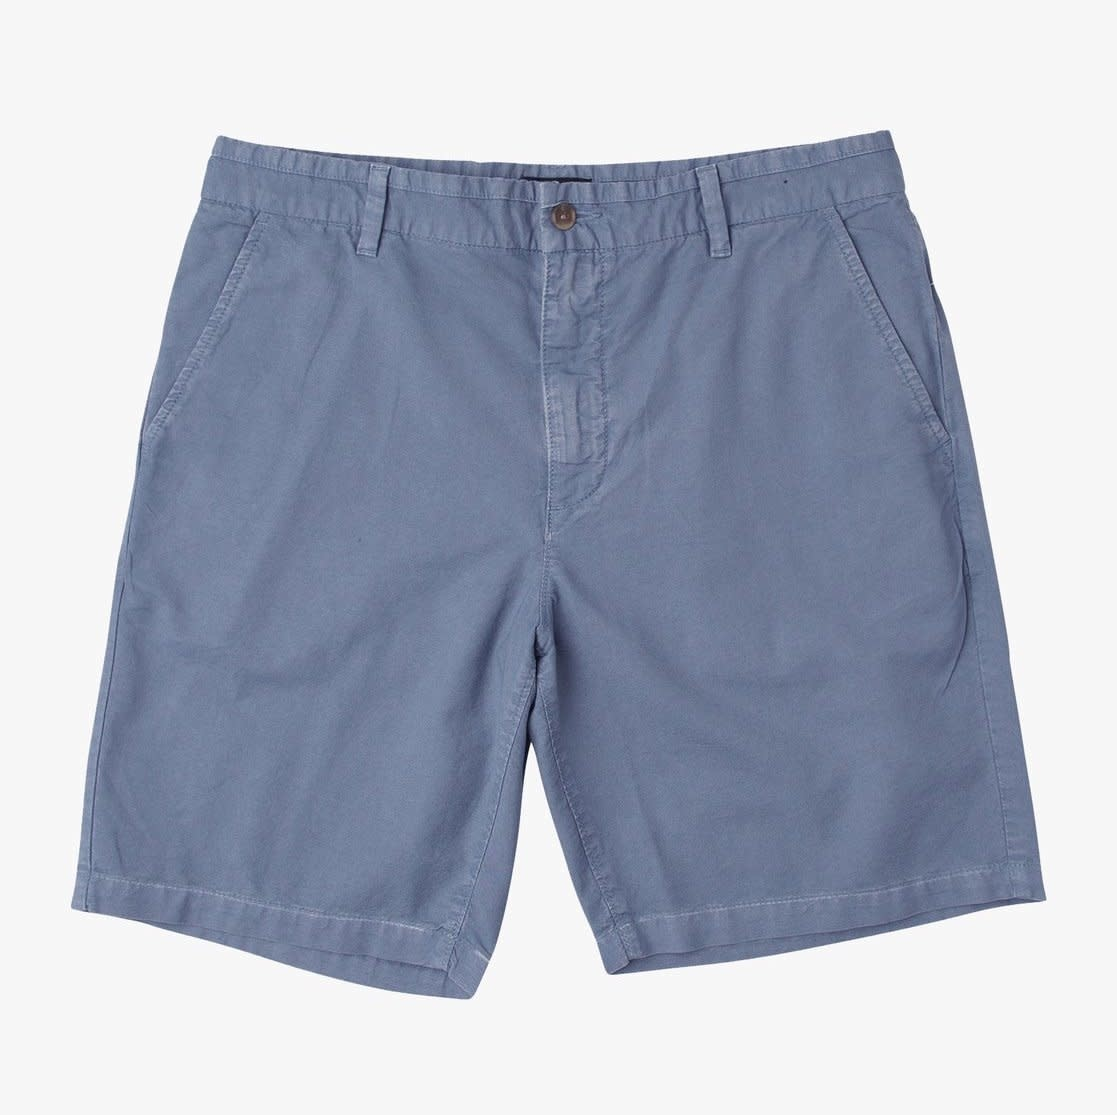 RVCA Butter Ball Short Denim Blue